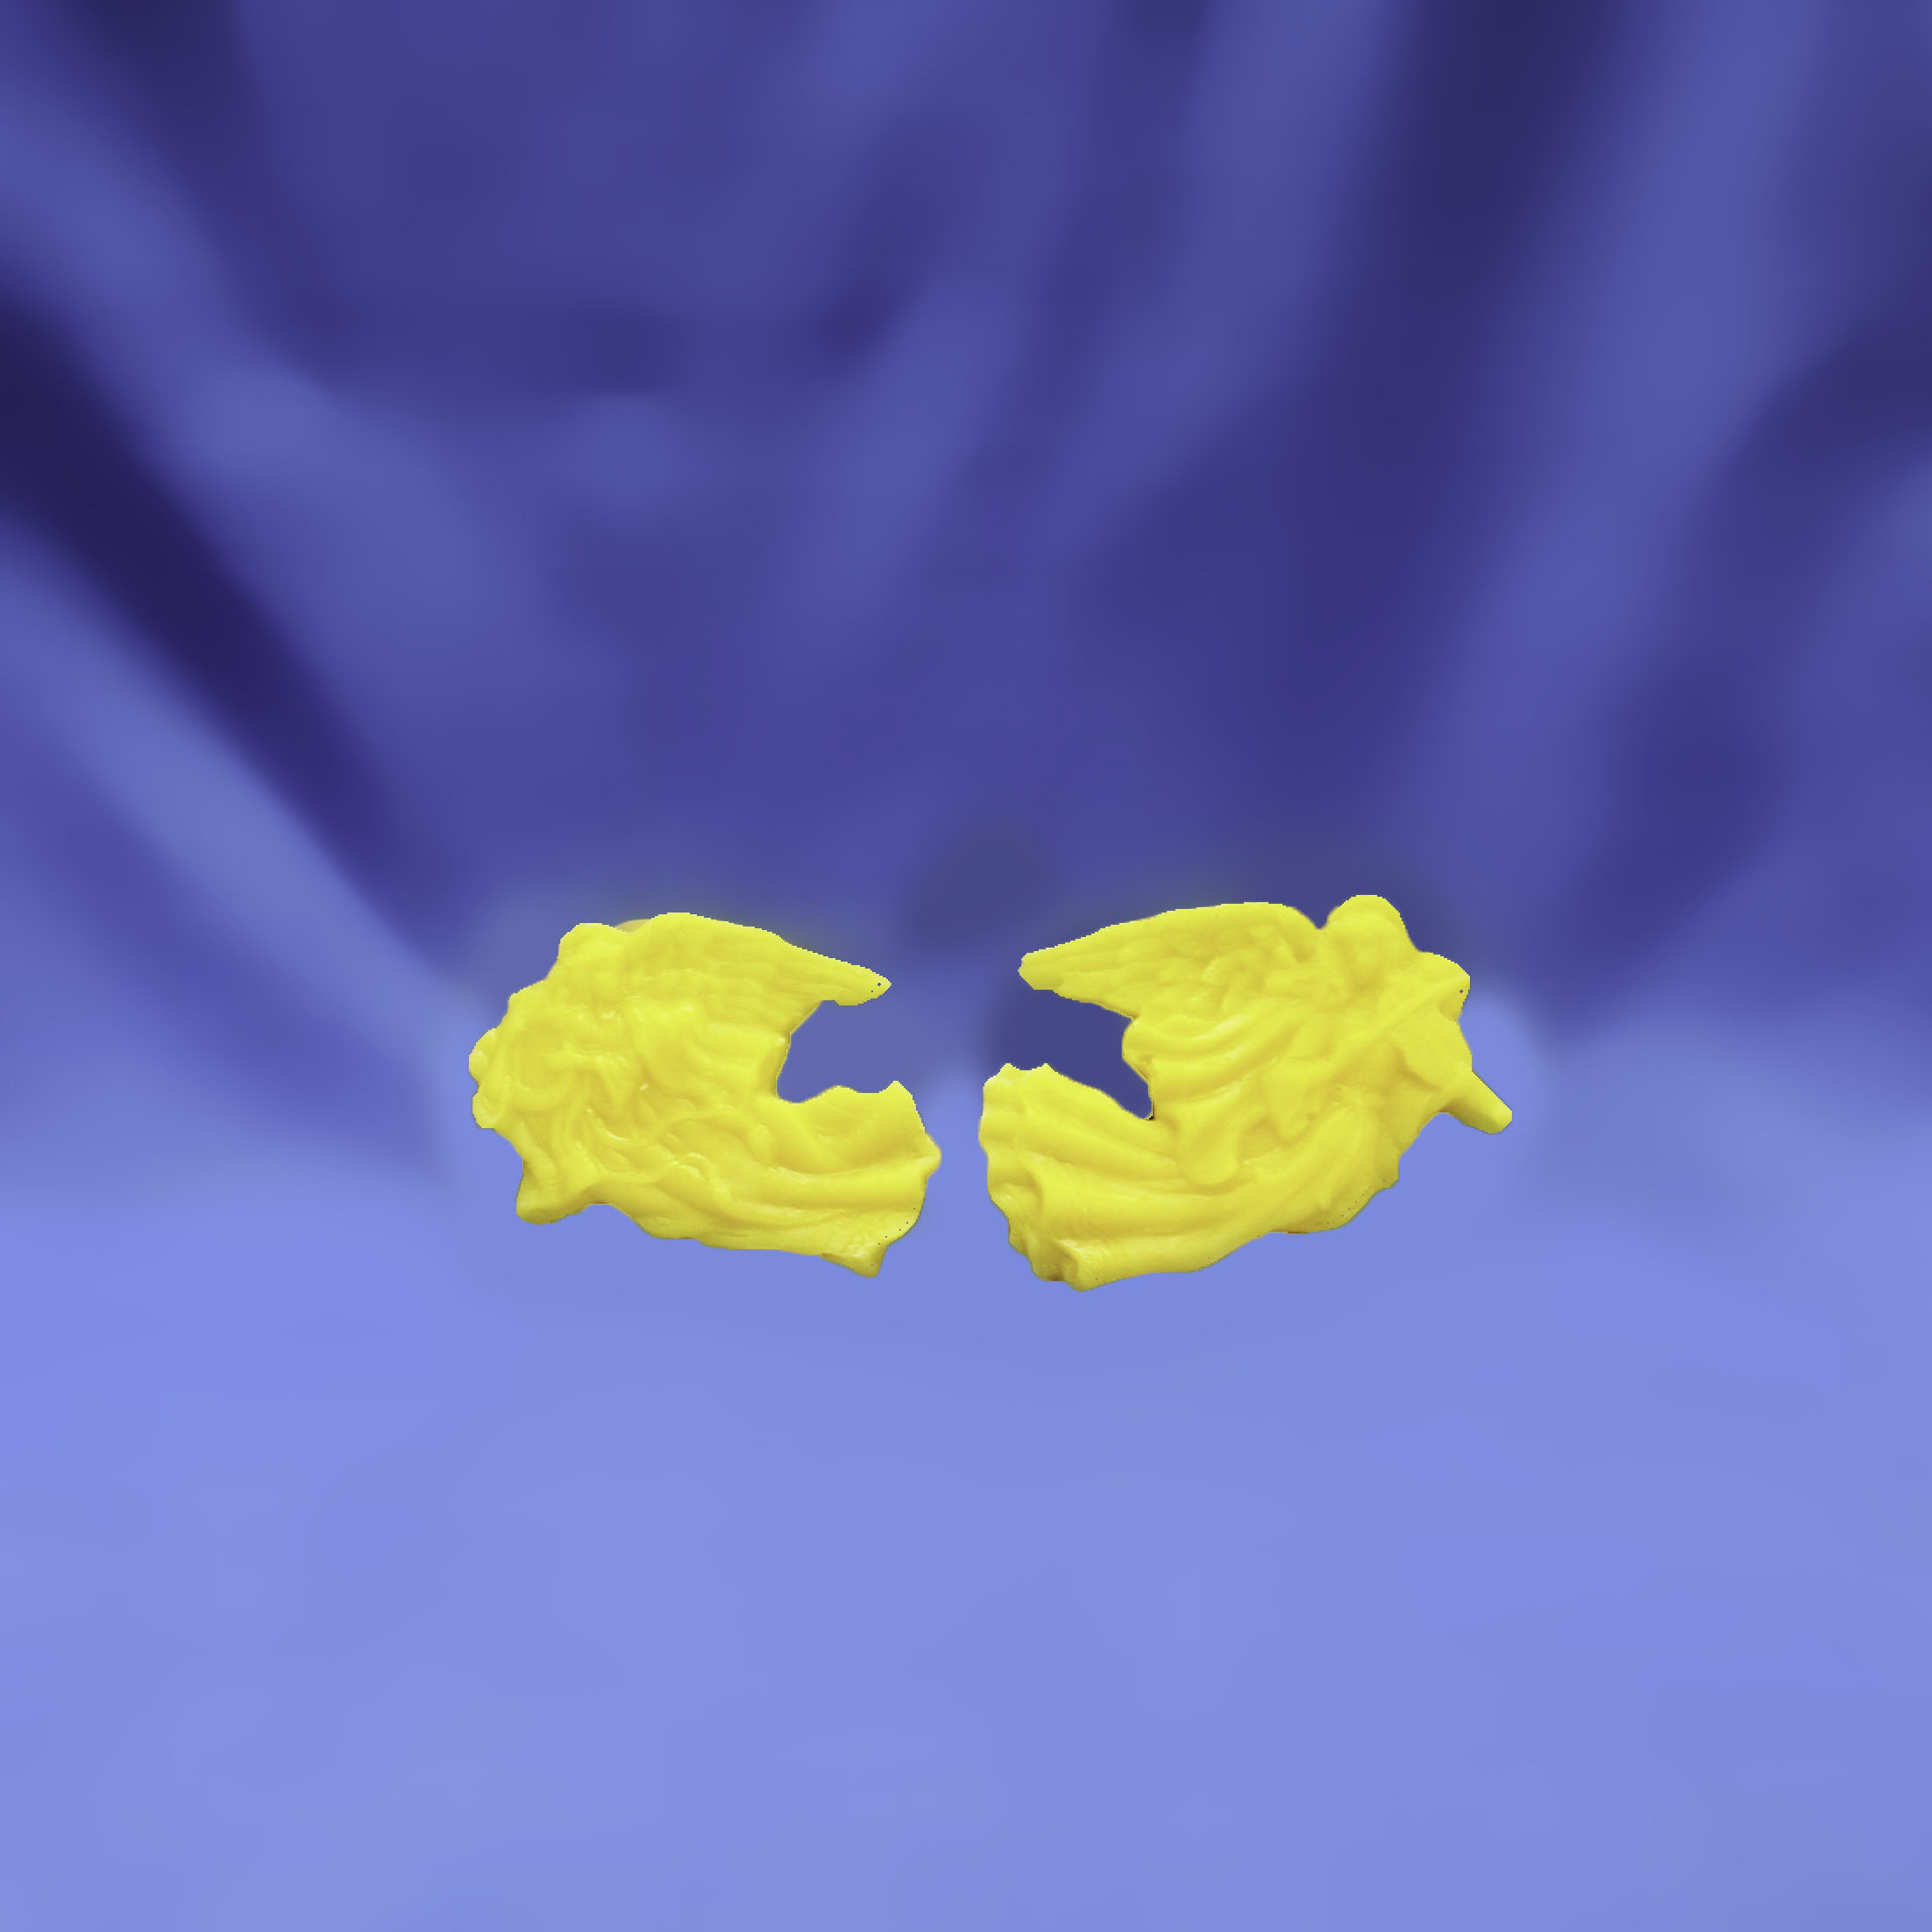 Beeswax Medium Pair of Flying Angels with Instraments Ornament